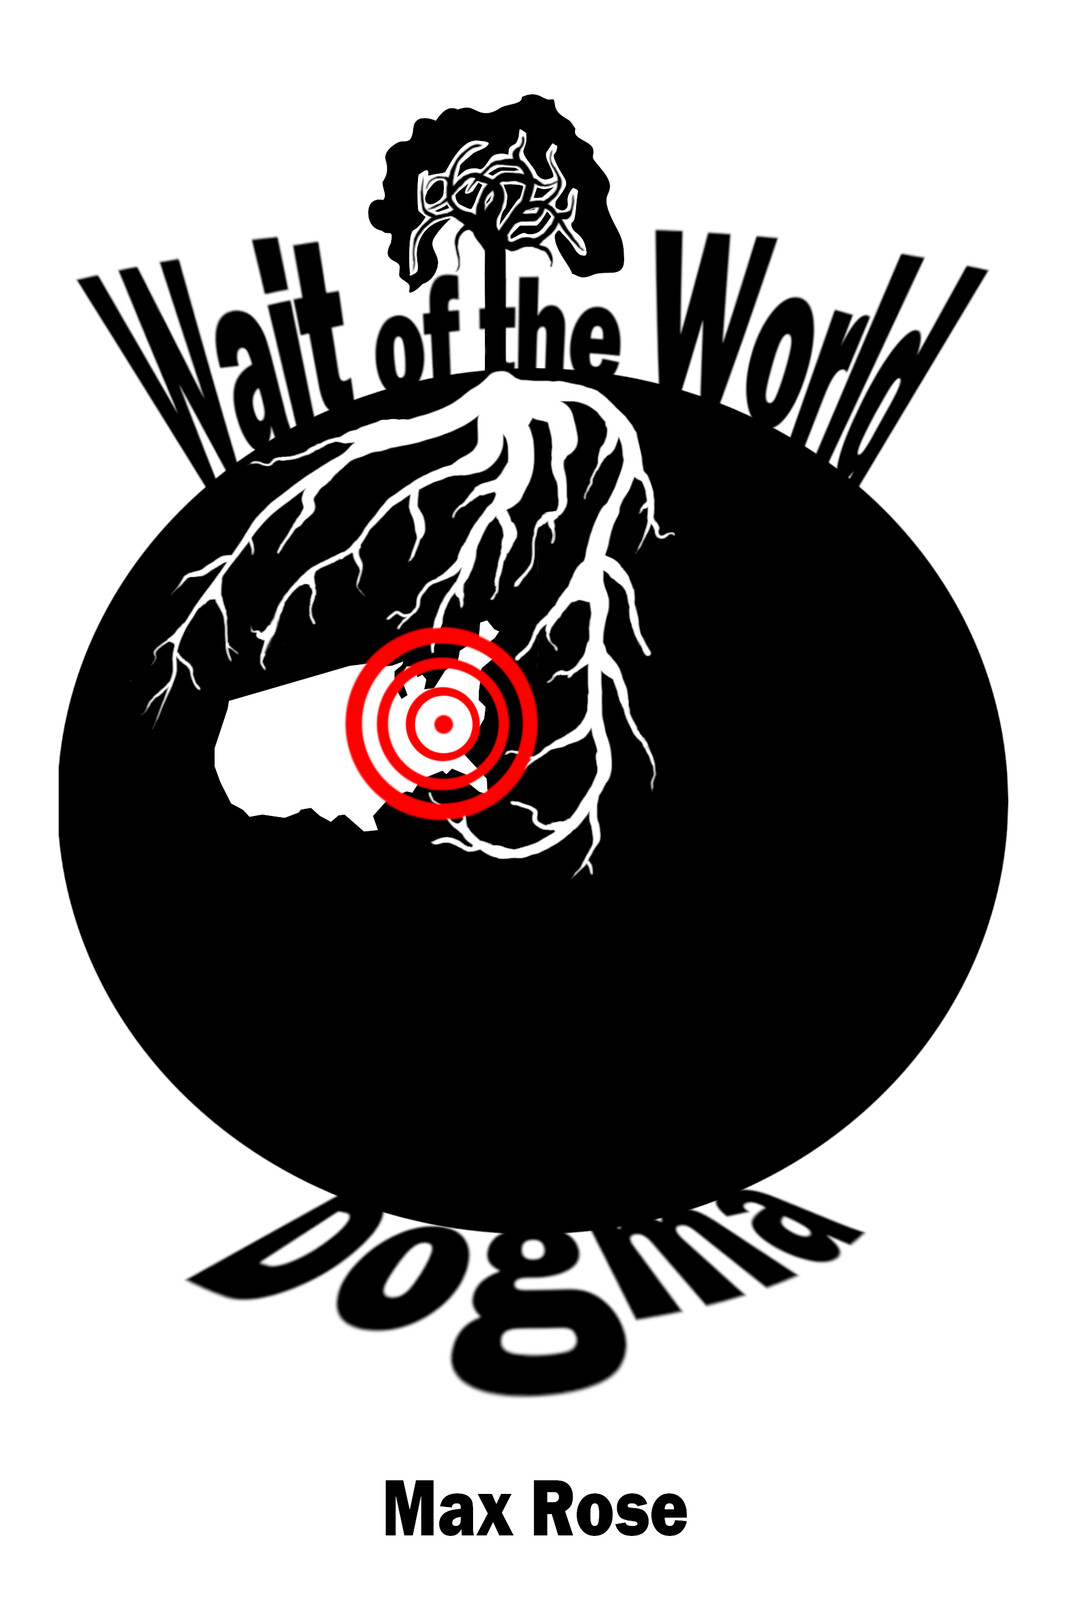 The latest version of the WotW:Dogma book cover